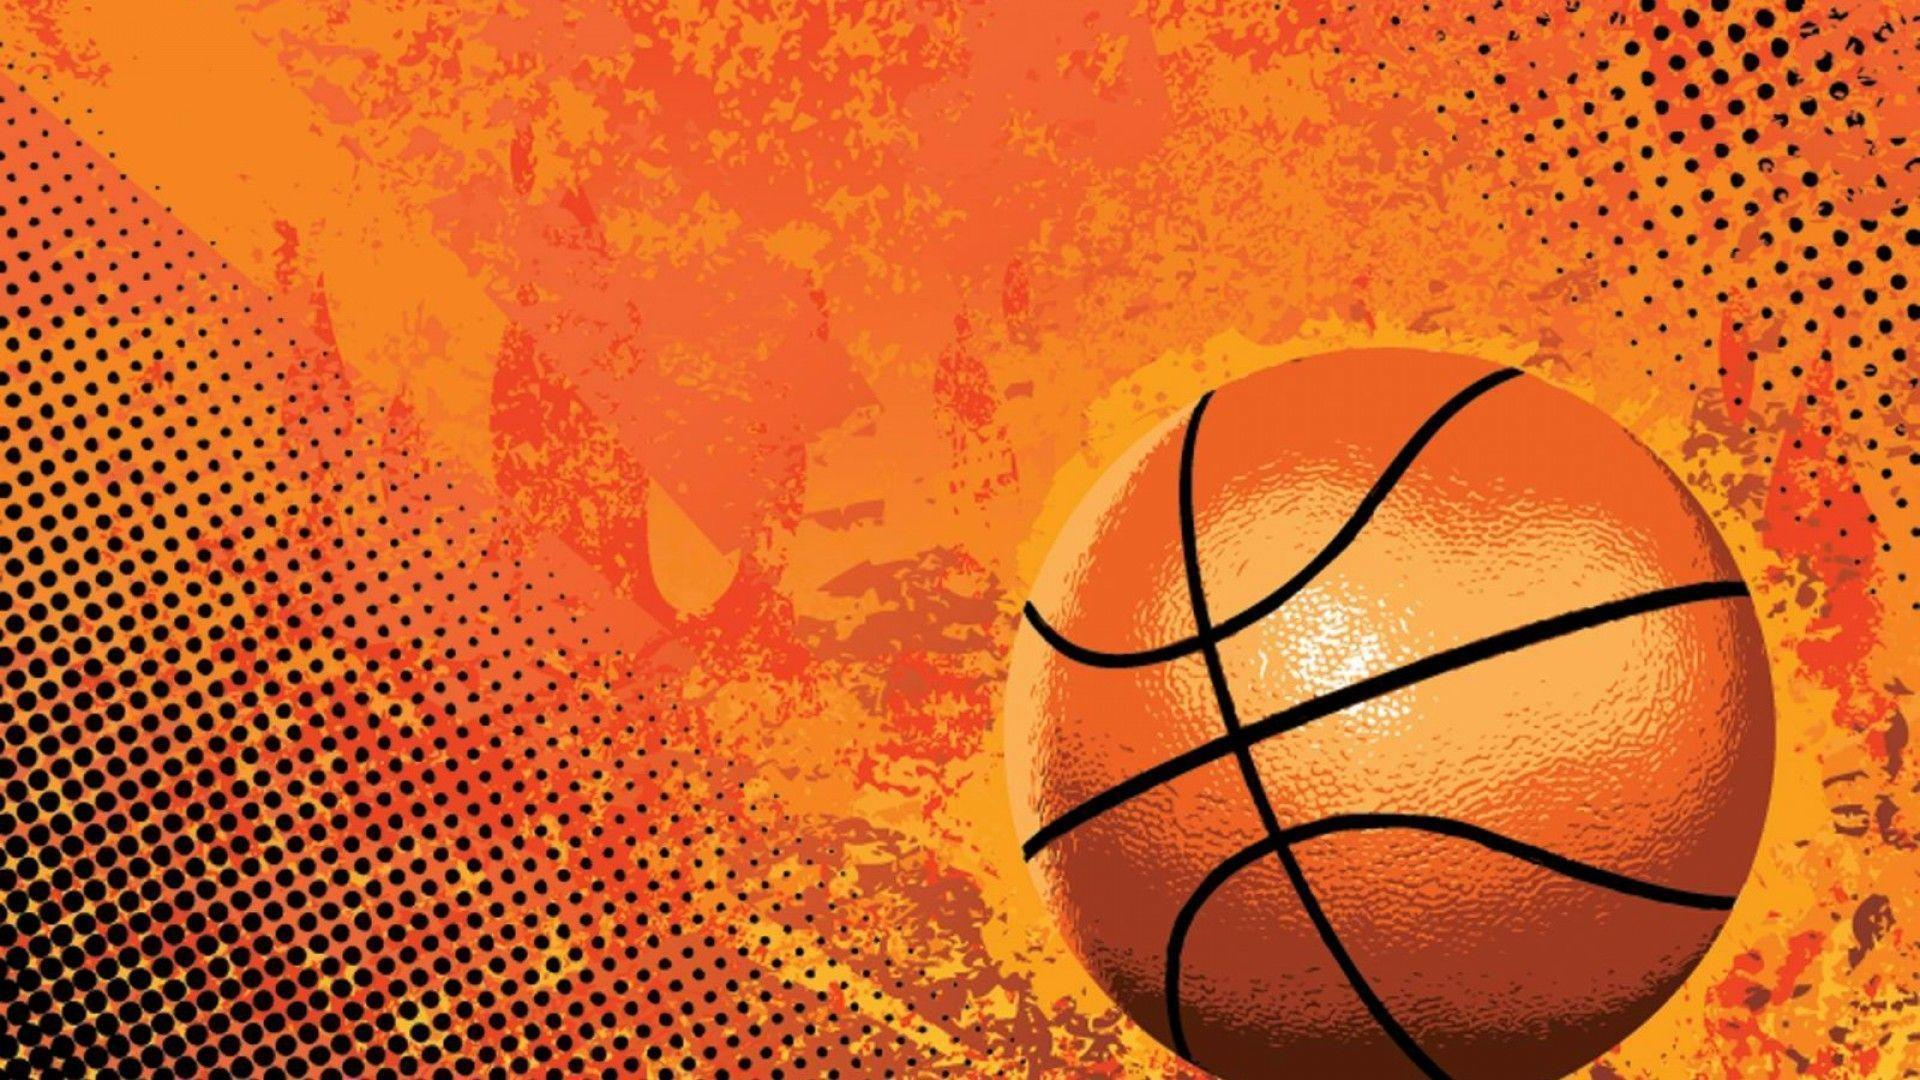 Basketball Backgrounds Wallpaper Cave HD Wallpapers Download Free Images Wallpaper [1000image.com]